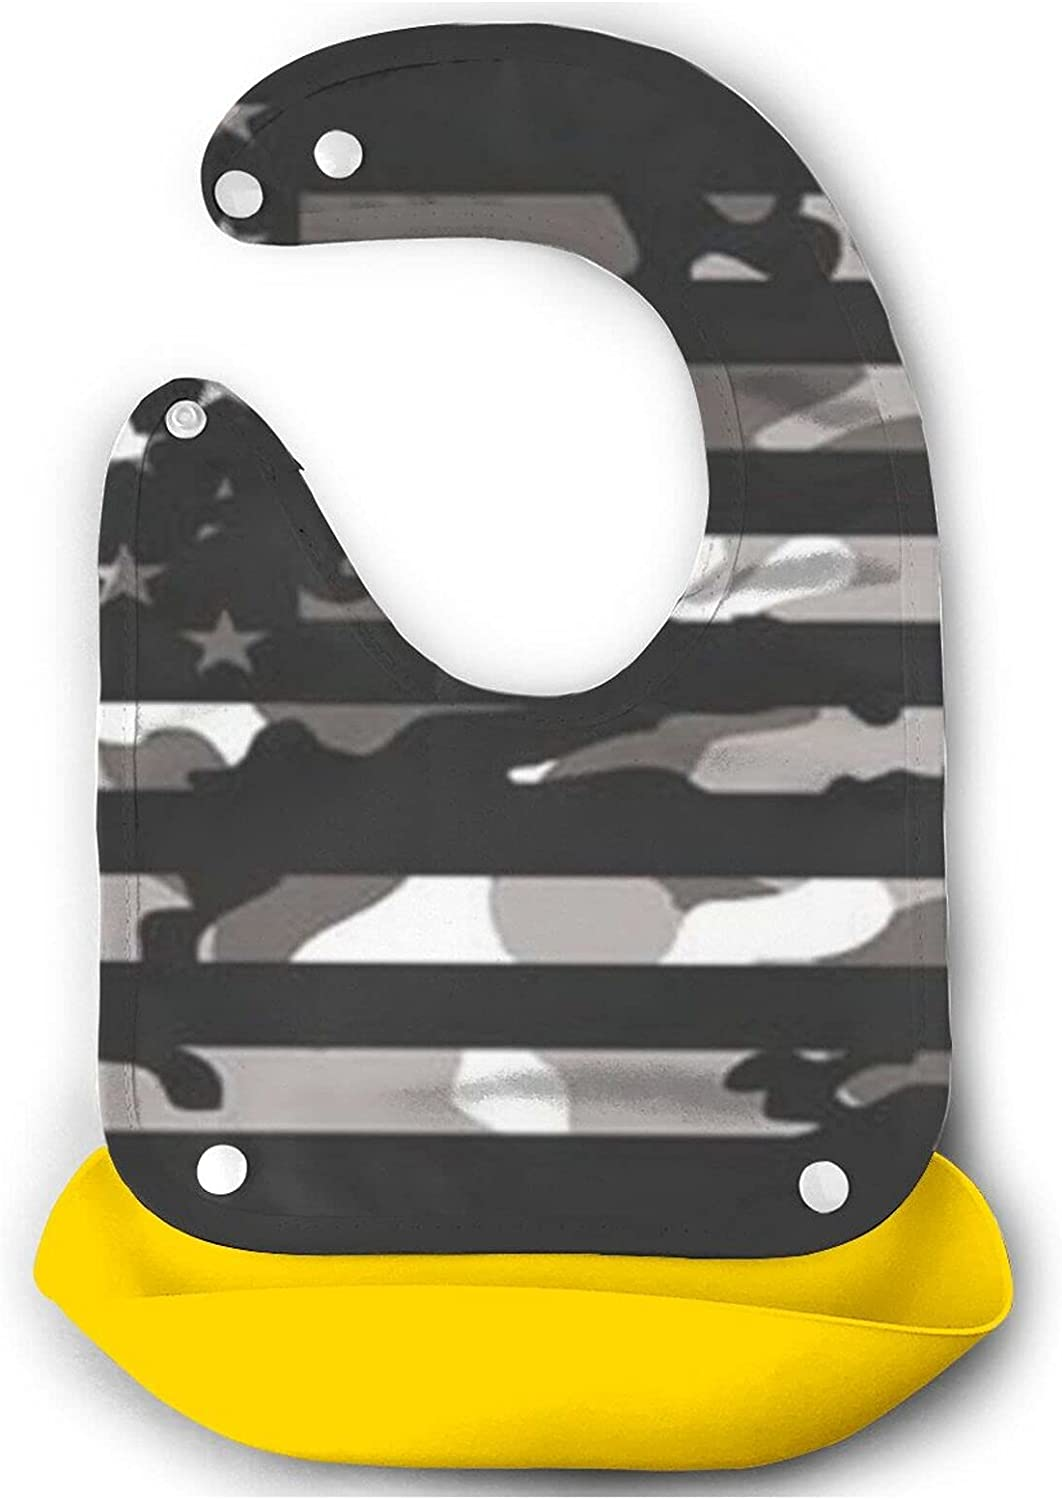 American Free Challenge the lowest price Shipping Cheap Bargain Gift Tactical Camo Flag Baby Babies For Toddlers Cute Bib